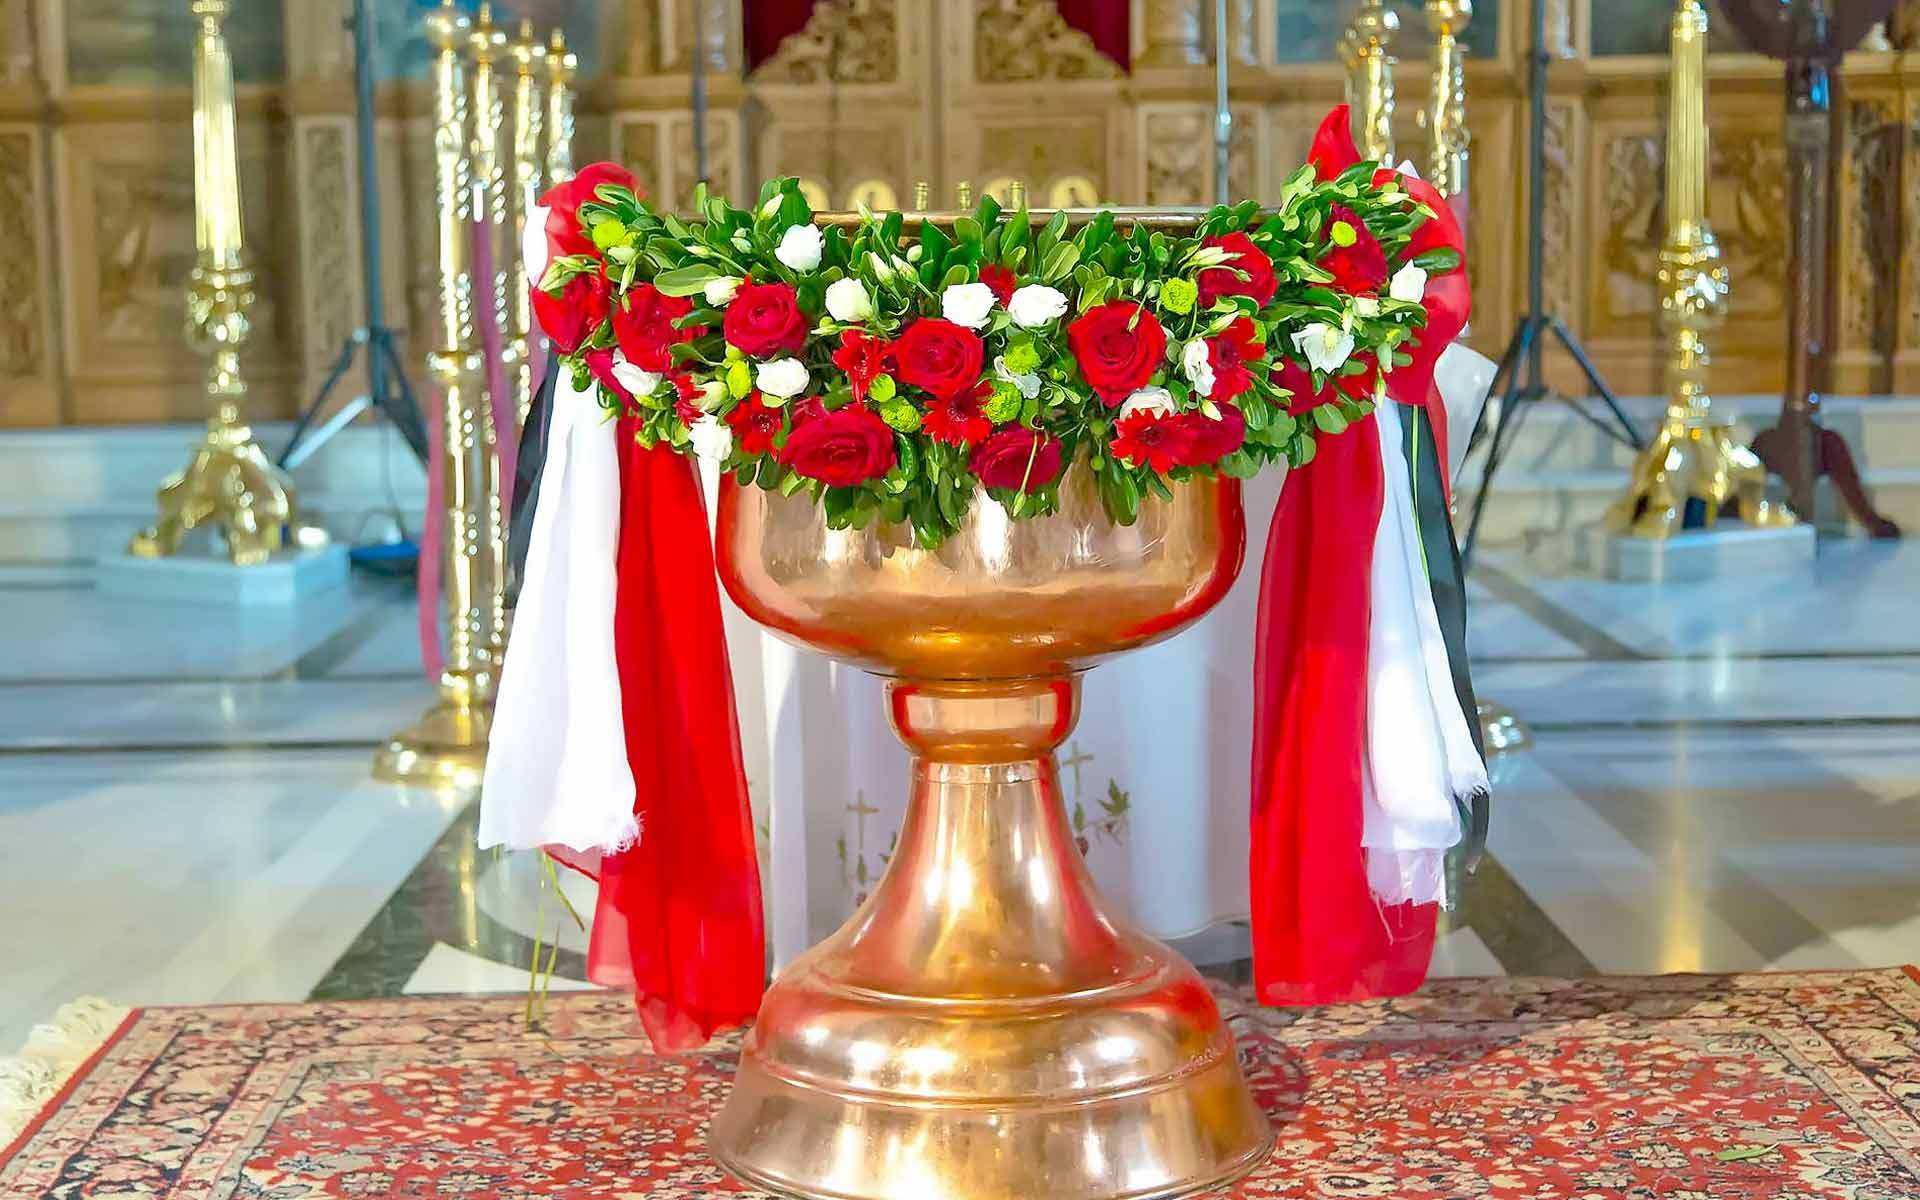 Enchanting-Golden-Gilded-Baptismal-Basin-Surrounded-By-Red-And-White-Roses-Draped-In-Chiffon